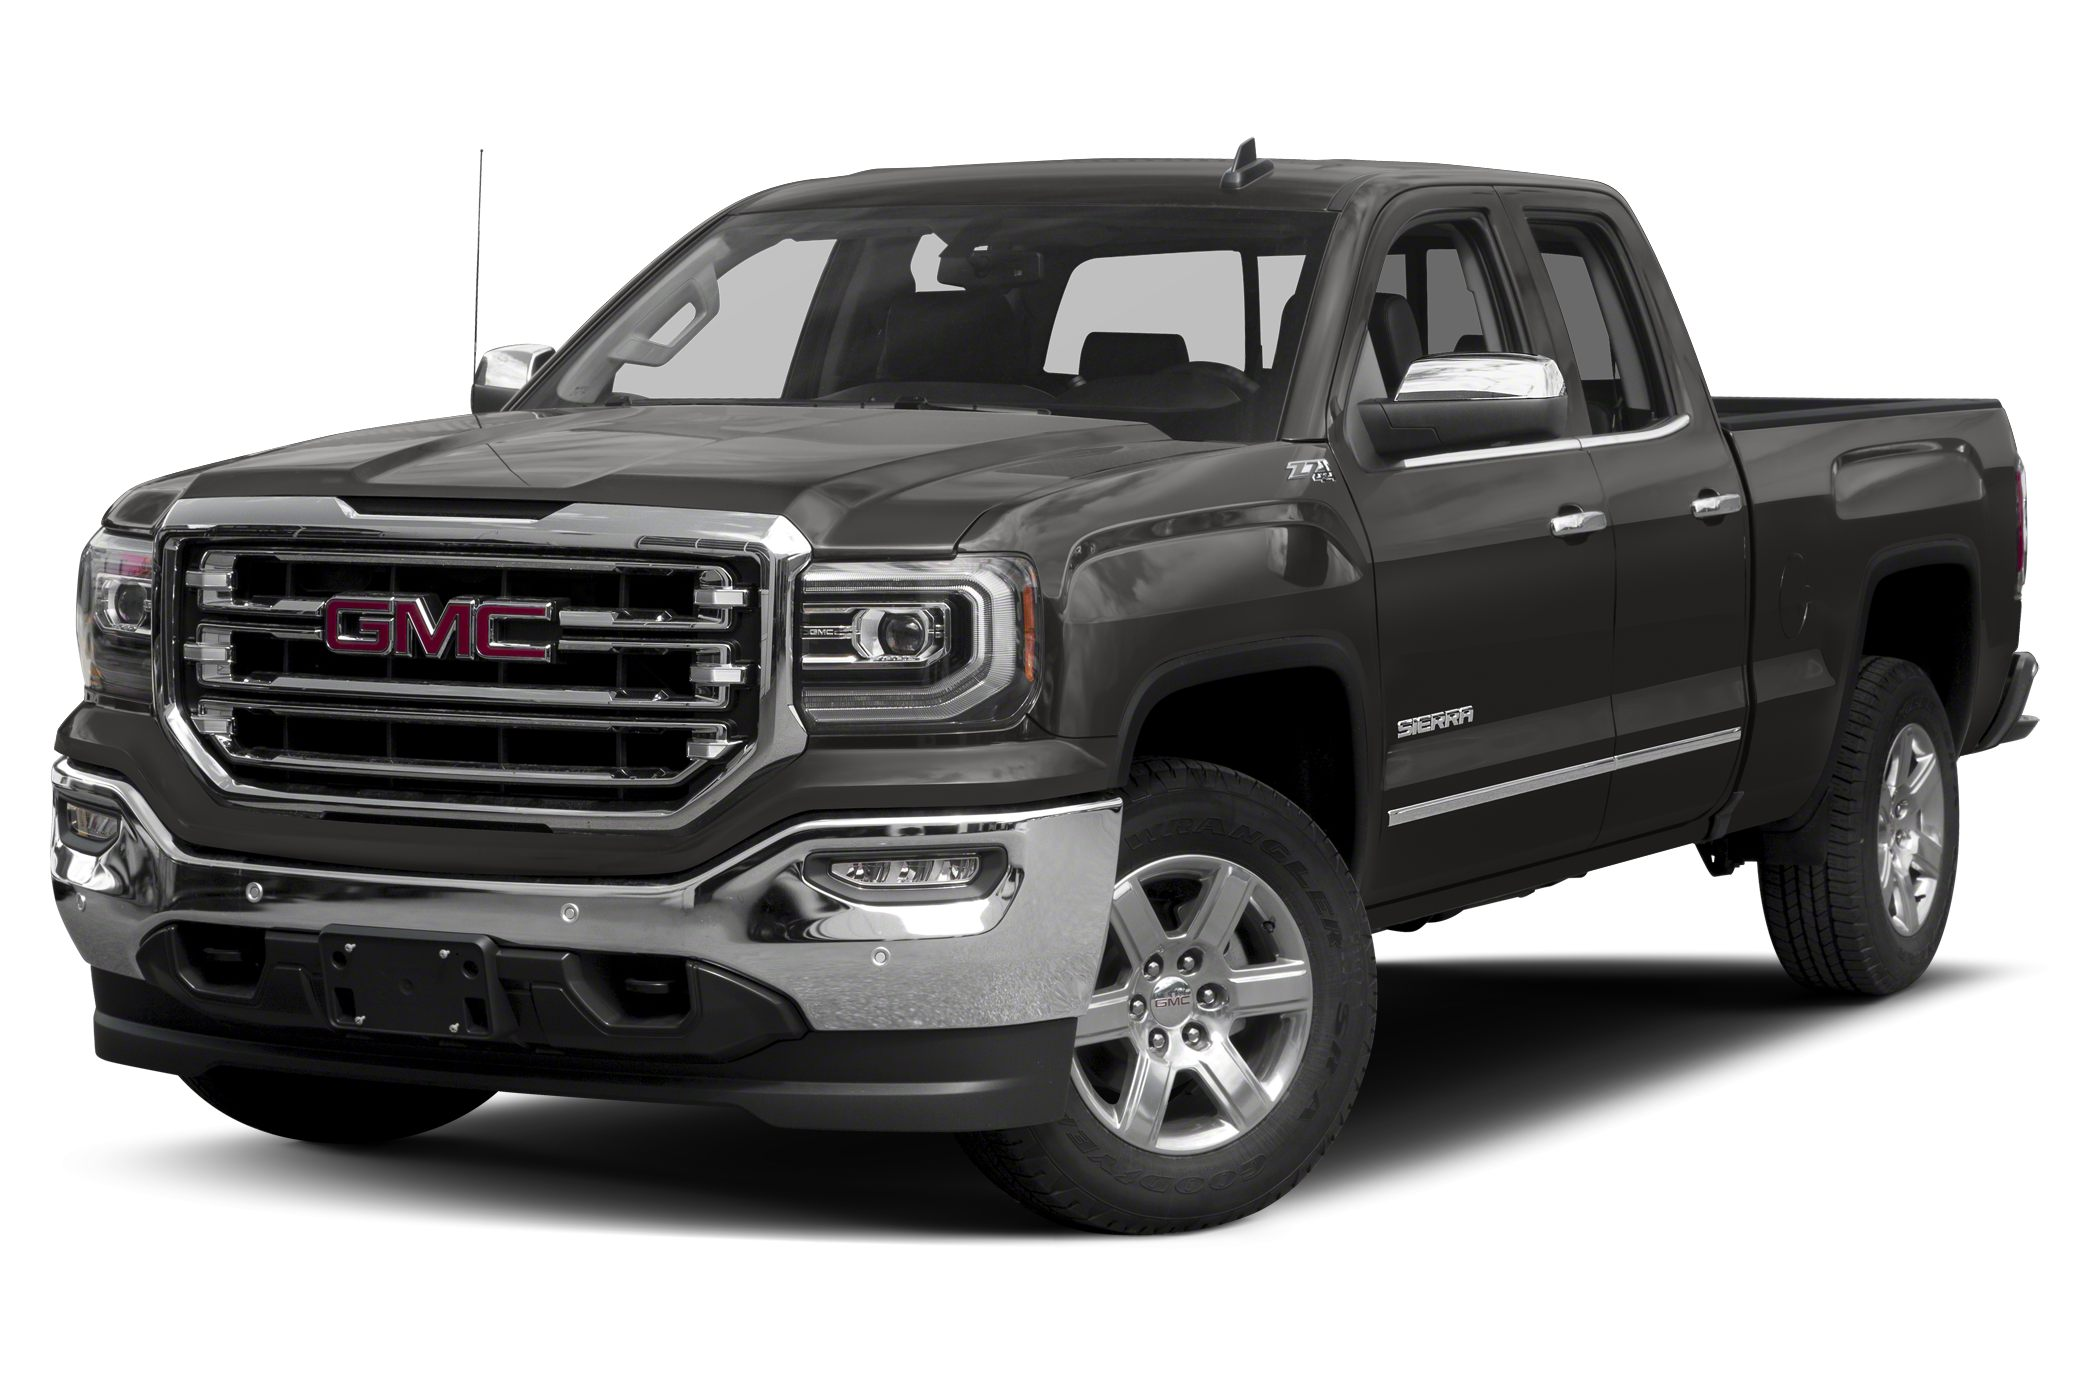 2018 GMC Sierra 1500 SLT With top features including the remote starter backup camera Bluetooth